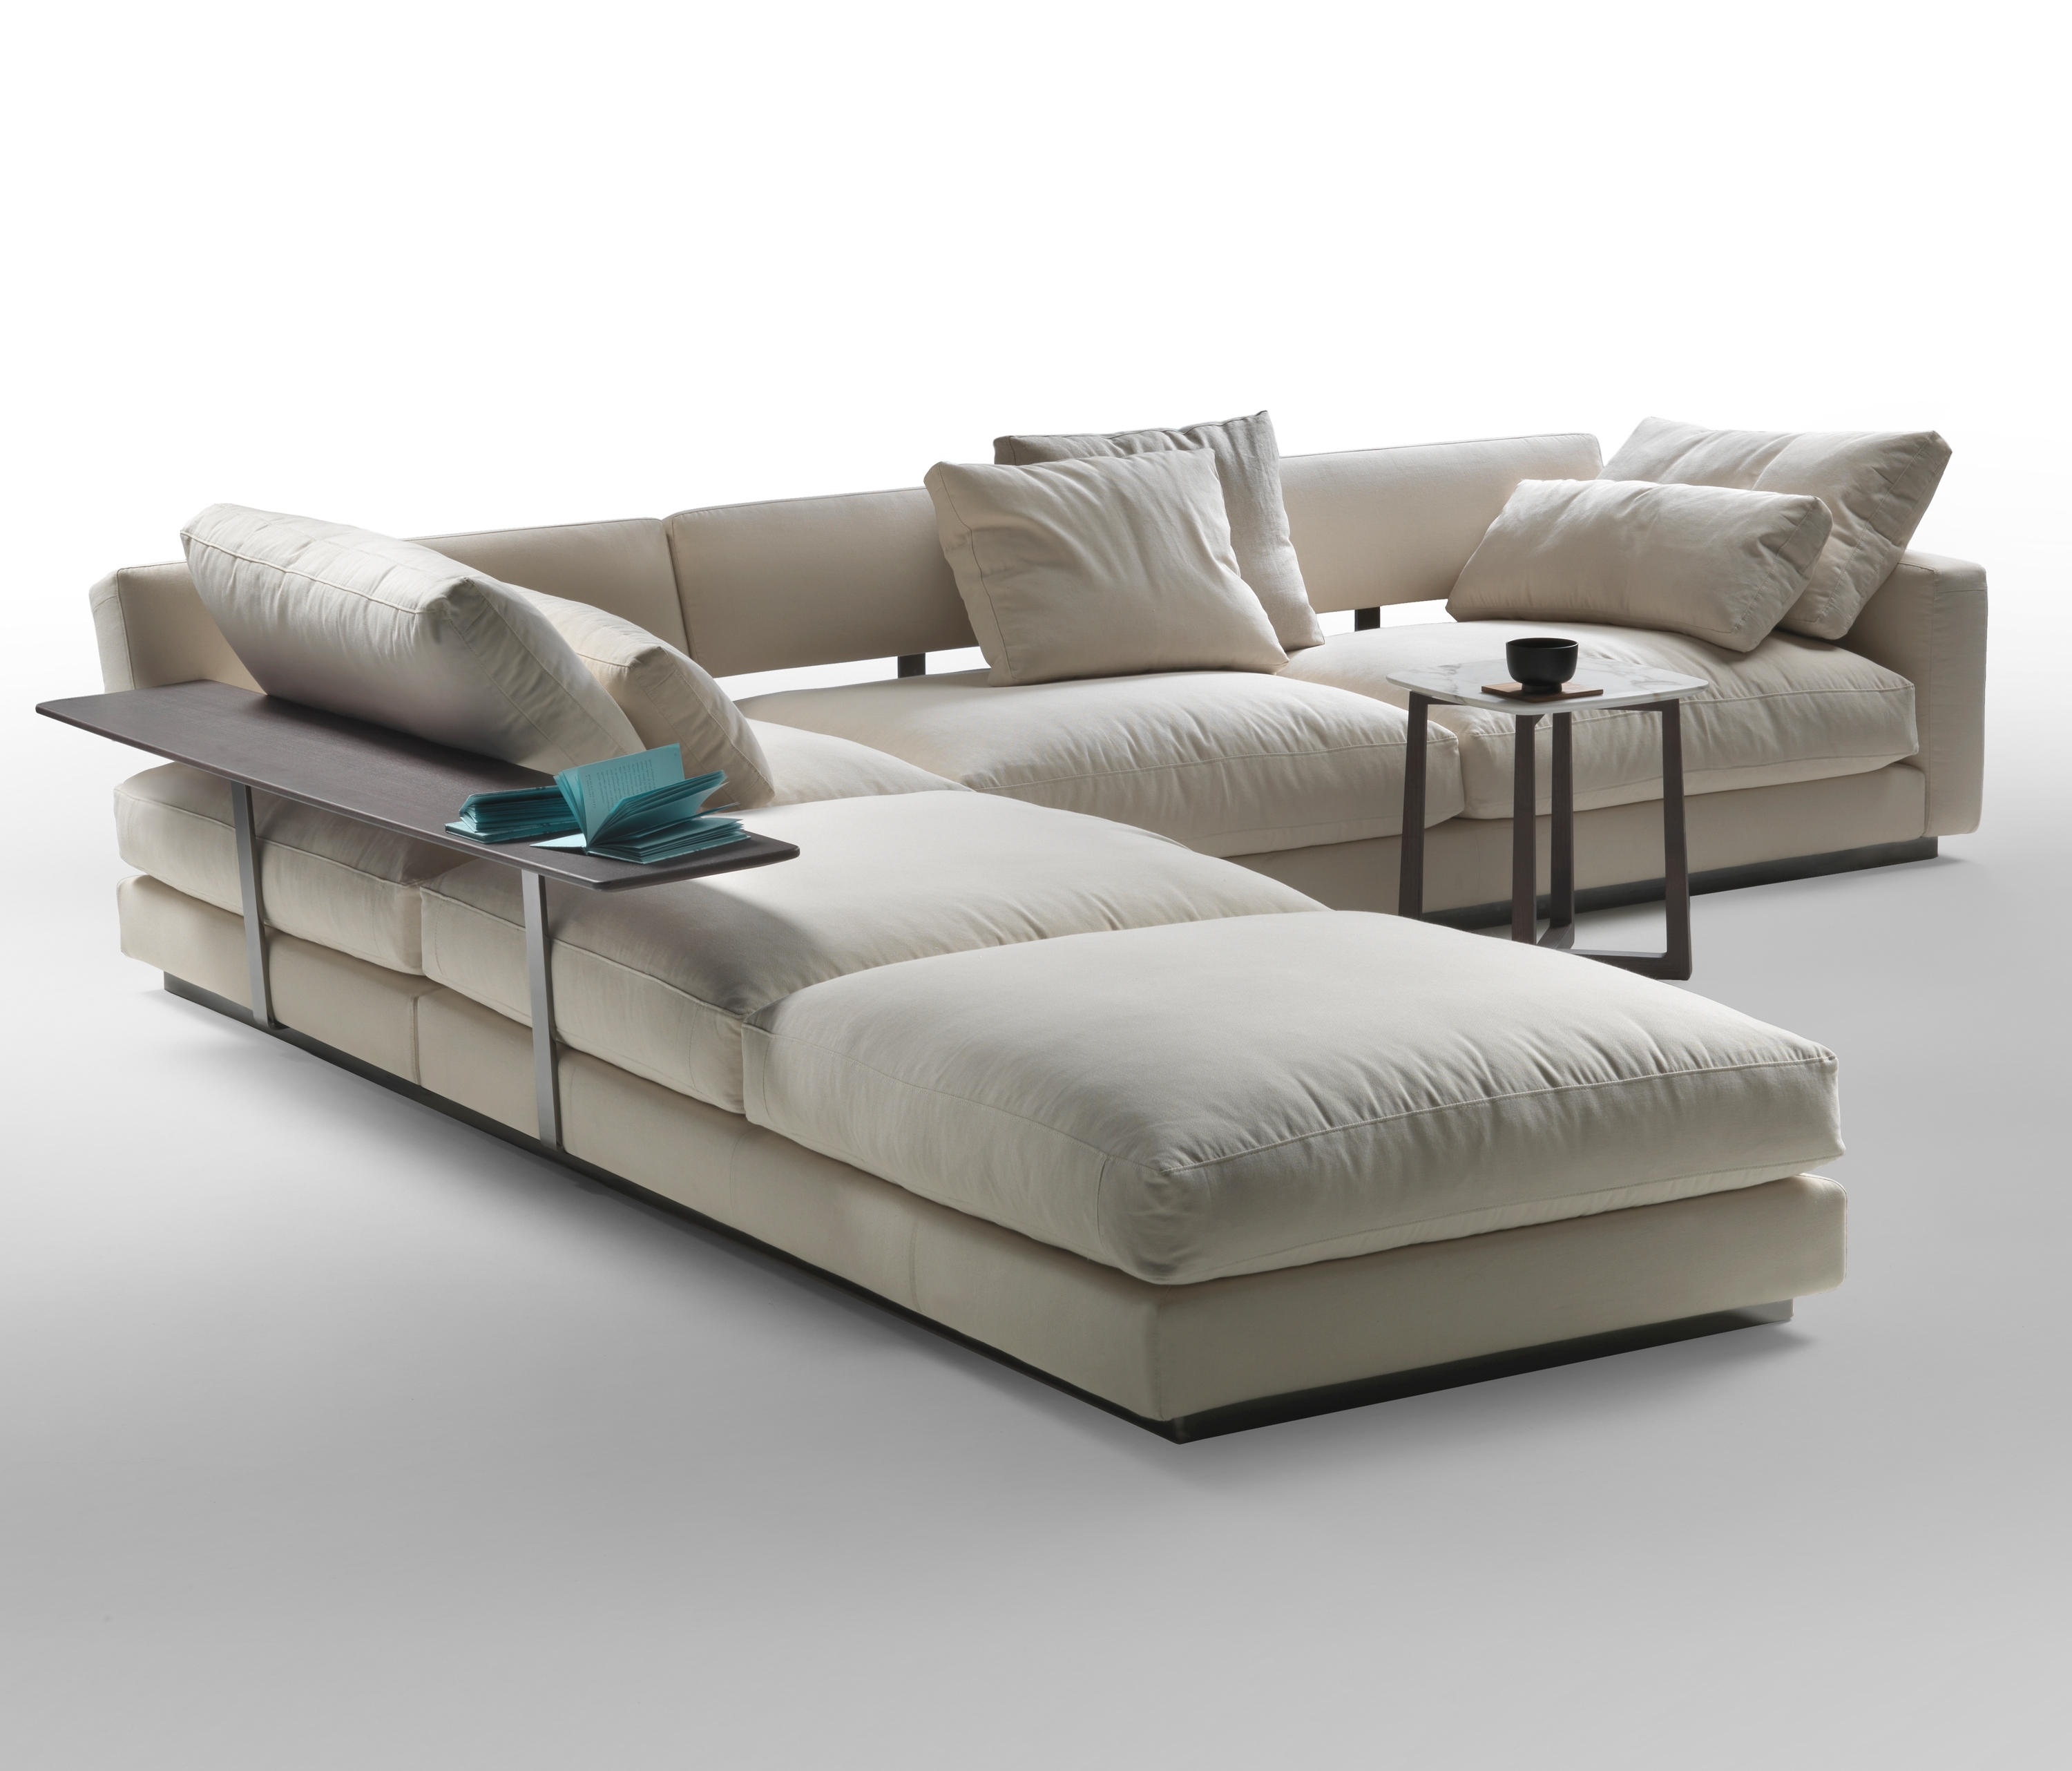 Newest Pleasure Sectional Sofa – Modular Seating Systems From Flexform Throughout St Louis Sectional Sofas (View 2 of 15)